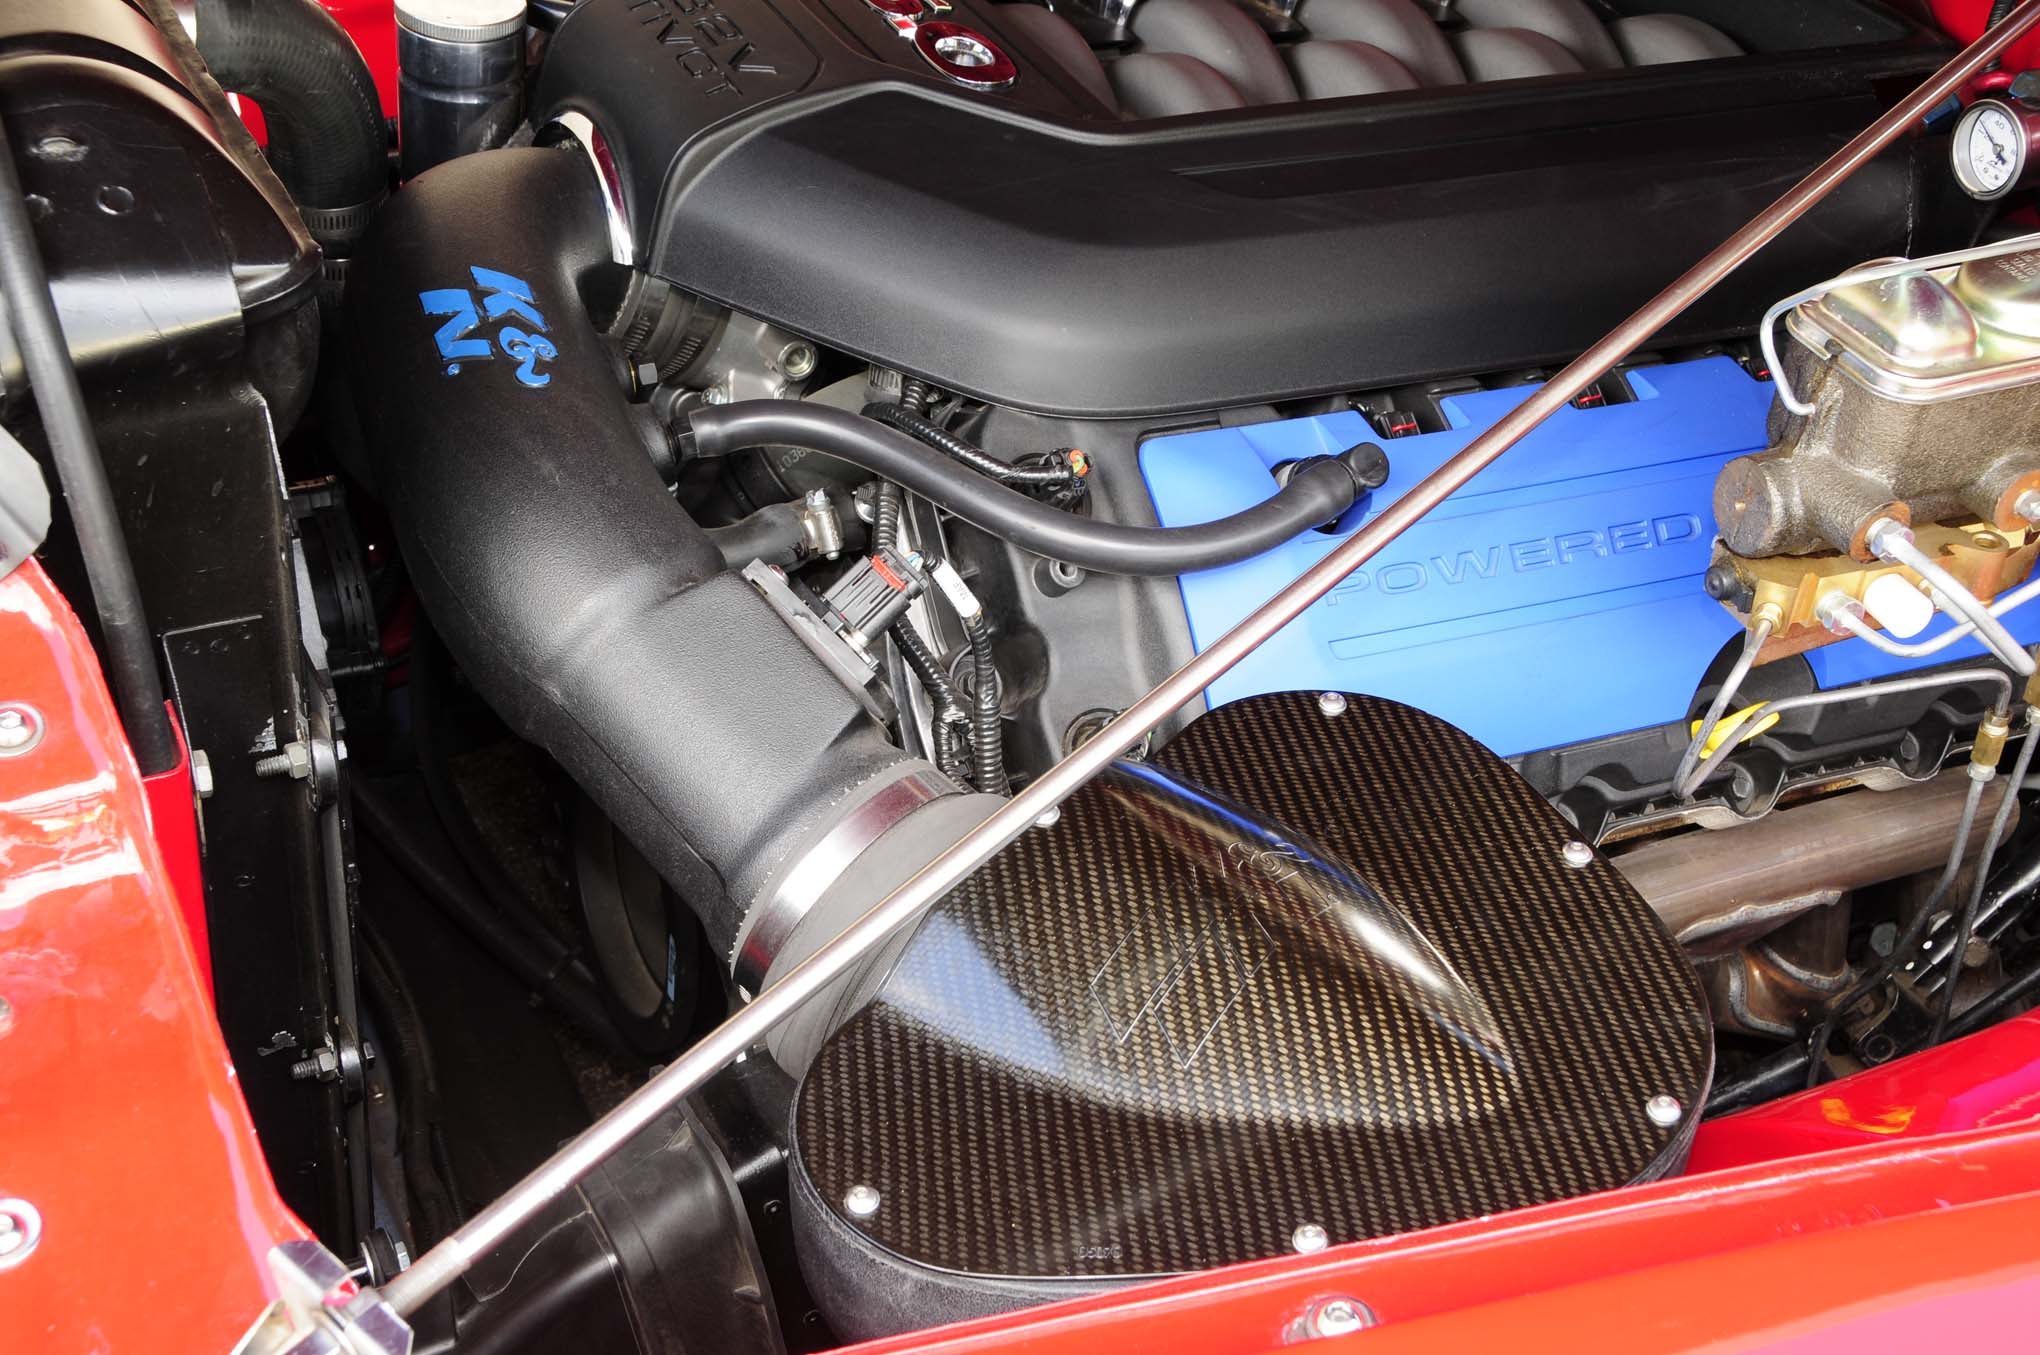 A K&N cold air intake with carbon-fiber accents adds just a bit of racy detail to the engine as well as increase performance.